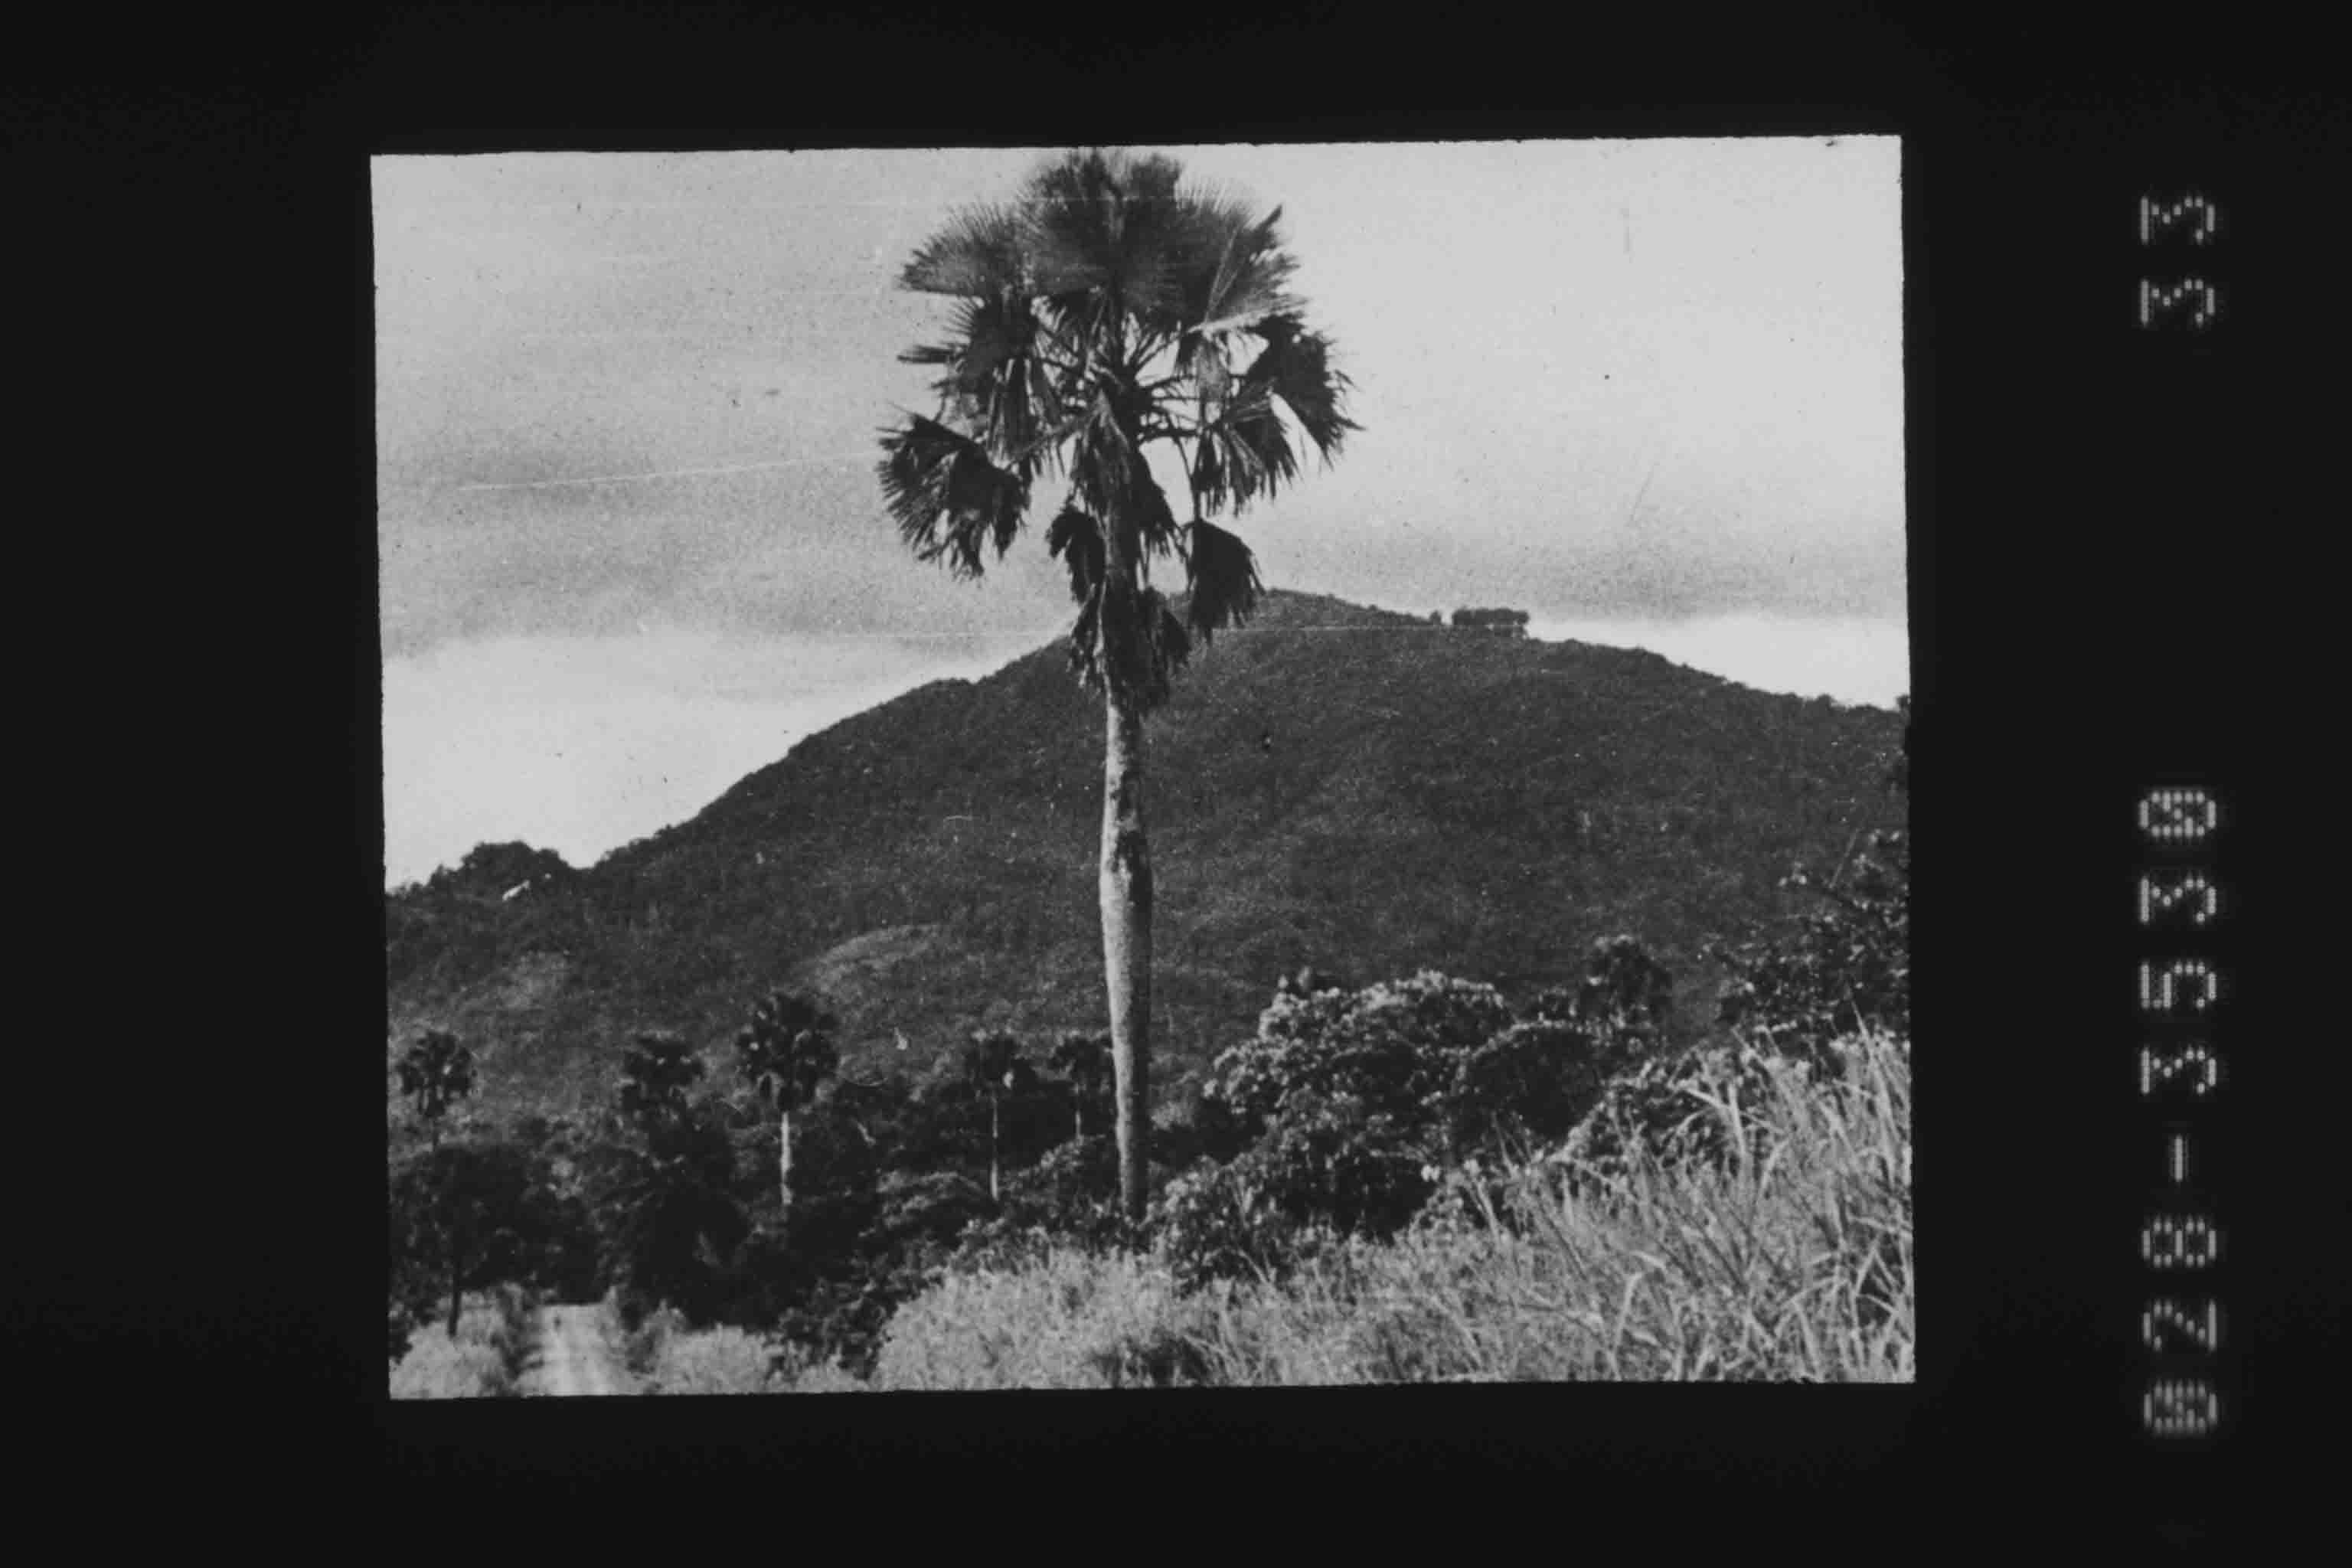 Sanco mountain pre-1950 (dating unsure -- from DKB 6264_3051_3534_0115)